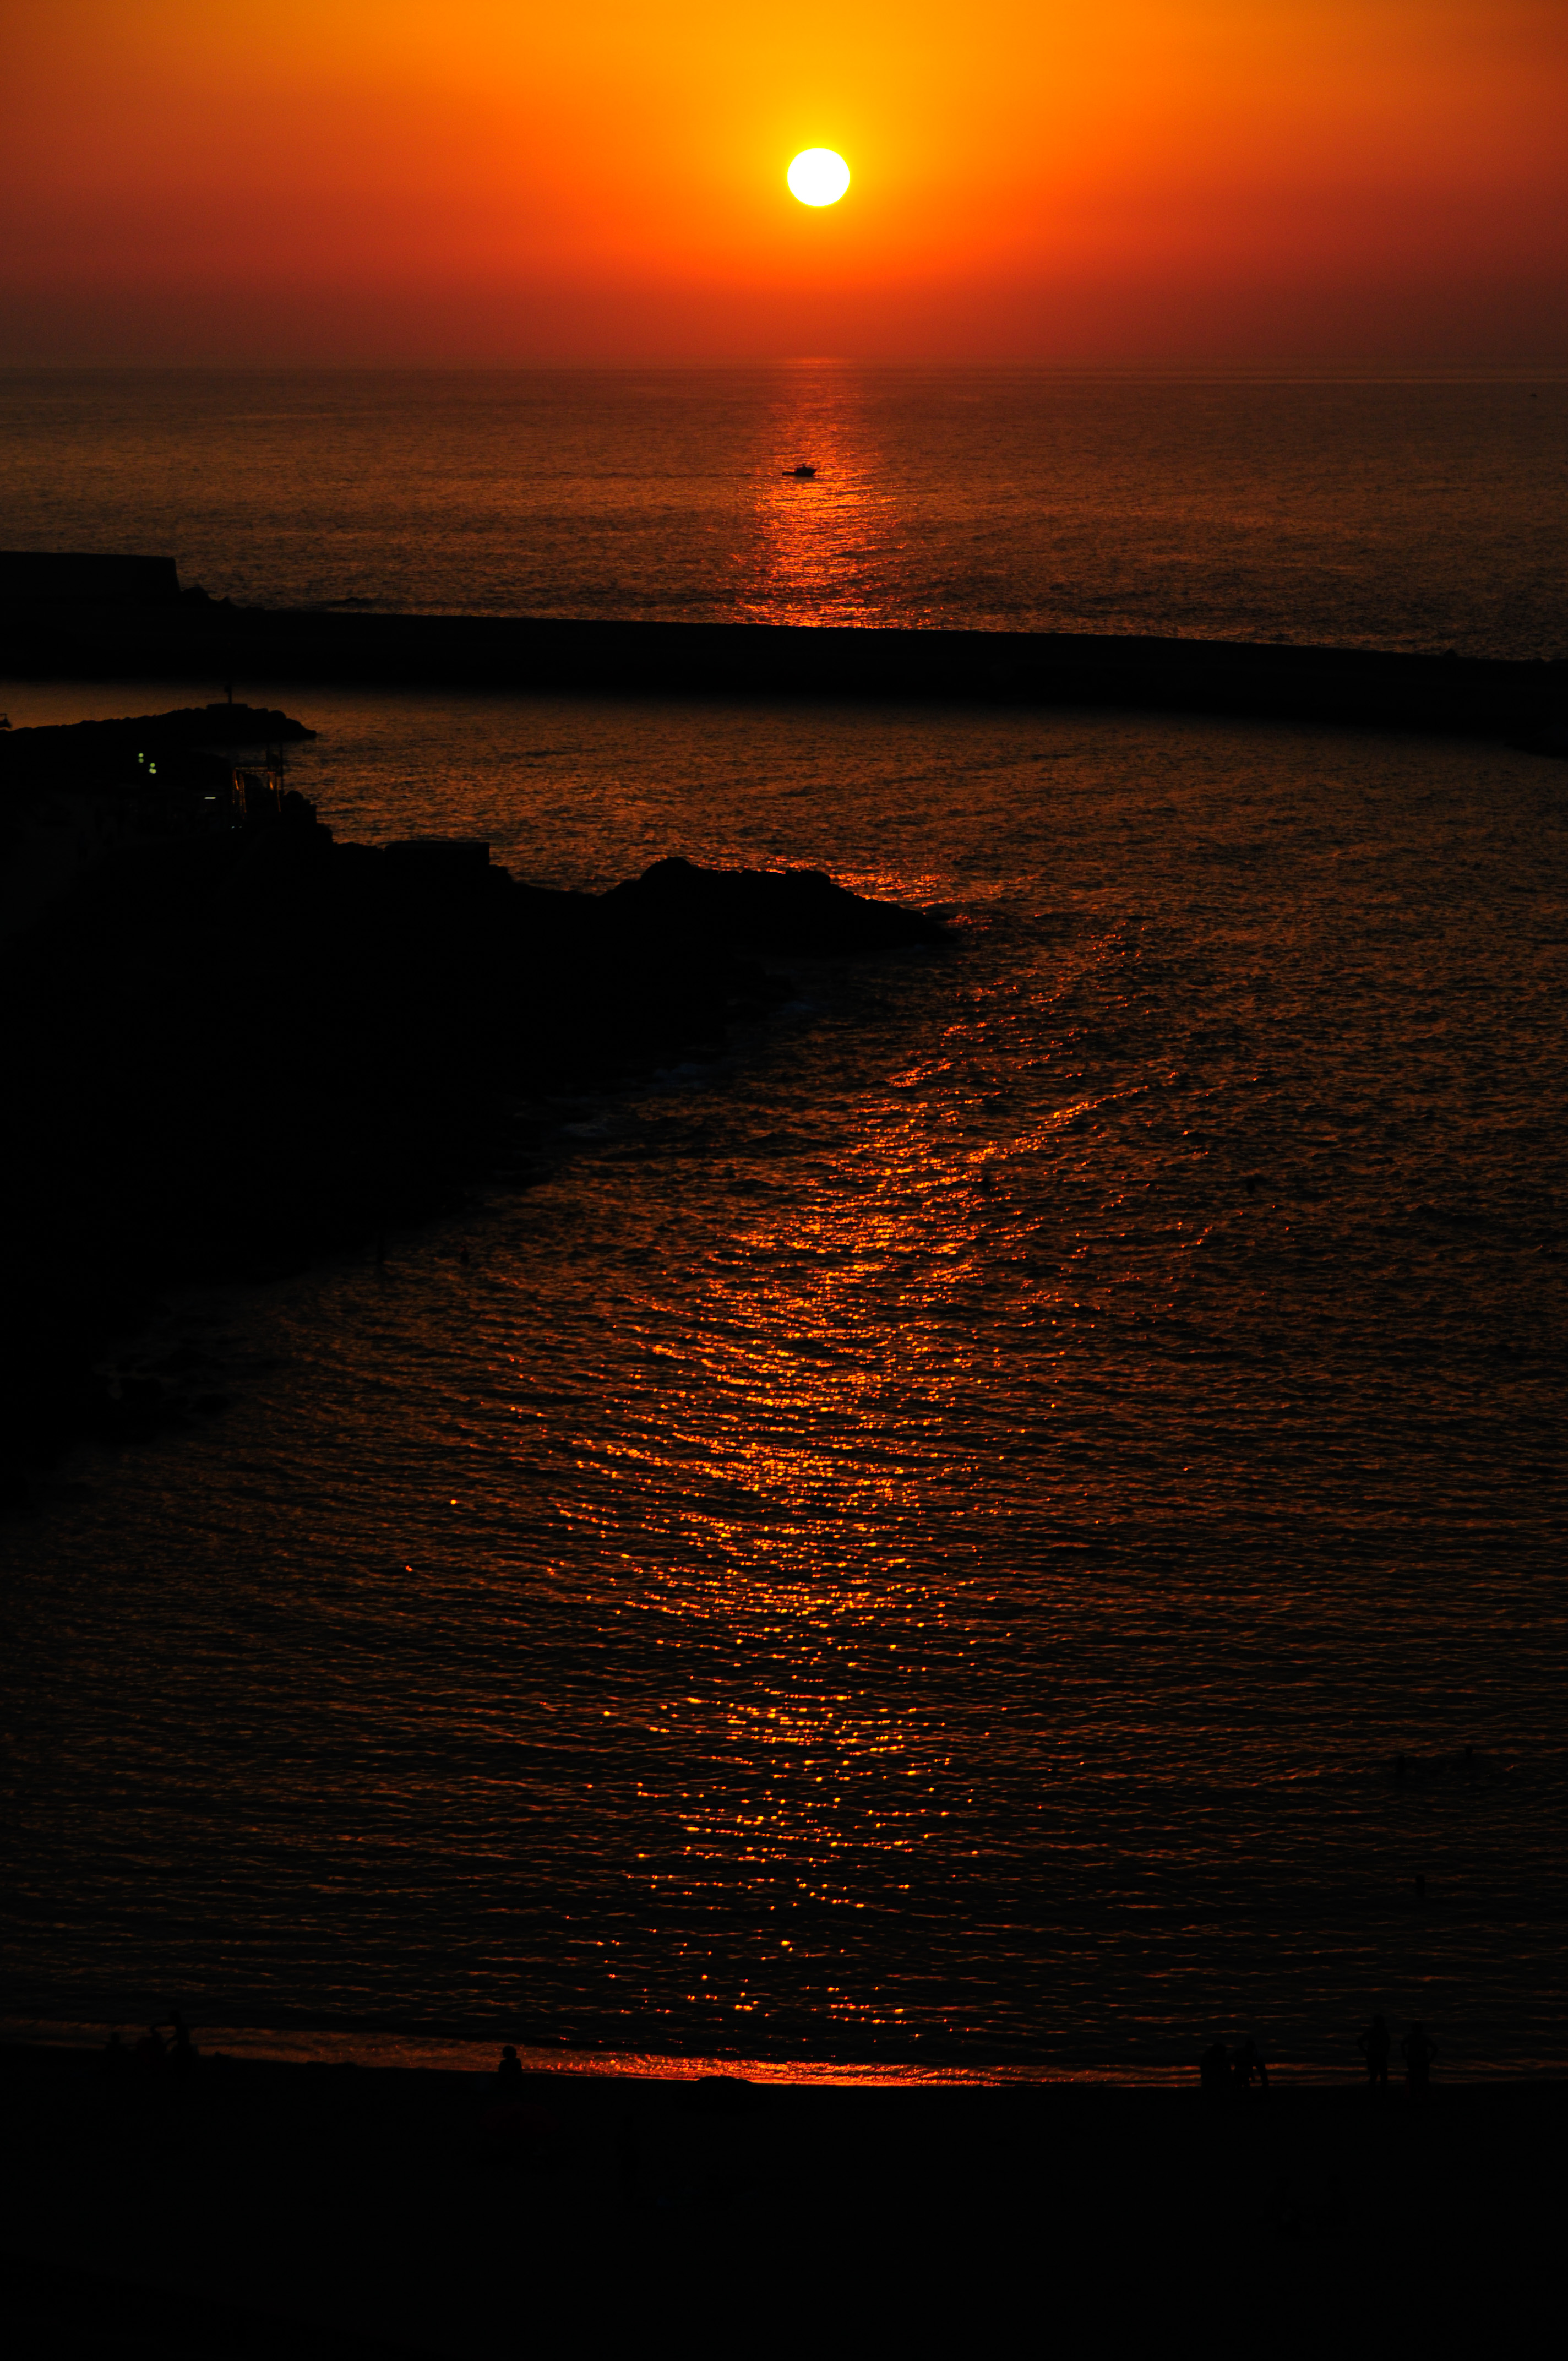 140756 download wallpaper Dark, Sunset, Sea, Dusk, Twilight, Landscape screensavers and pictures for free